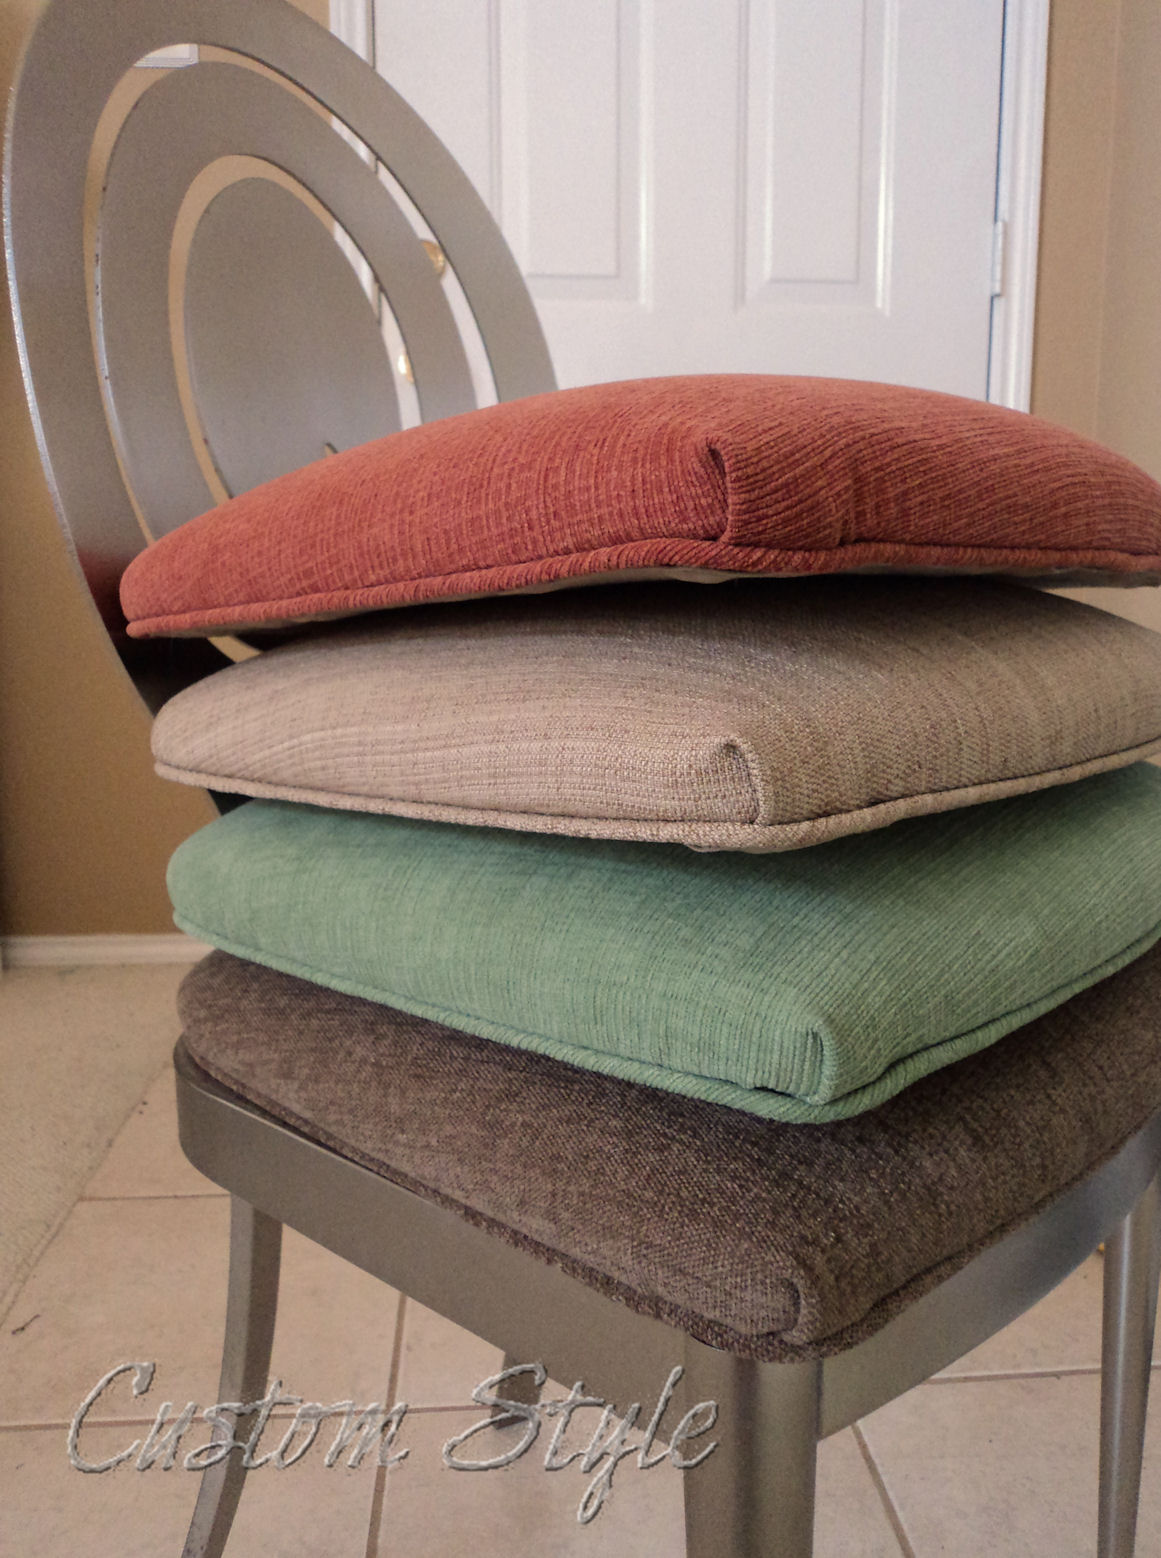 Reupholstering dining chair cushions custom style for Dining room chair cushions